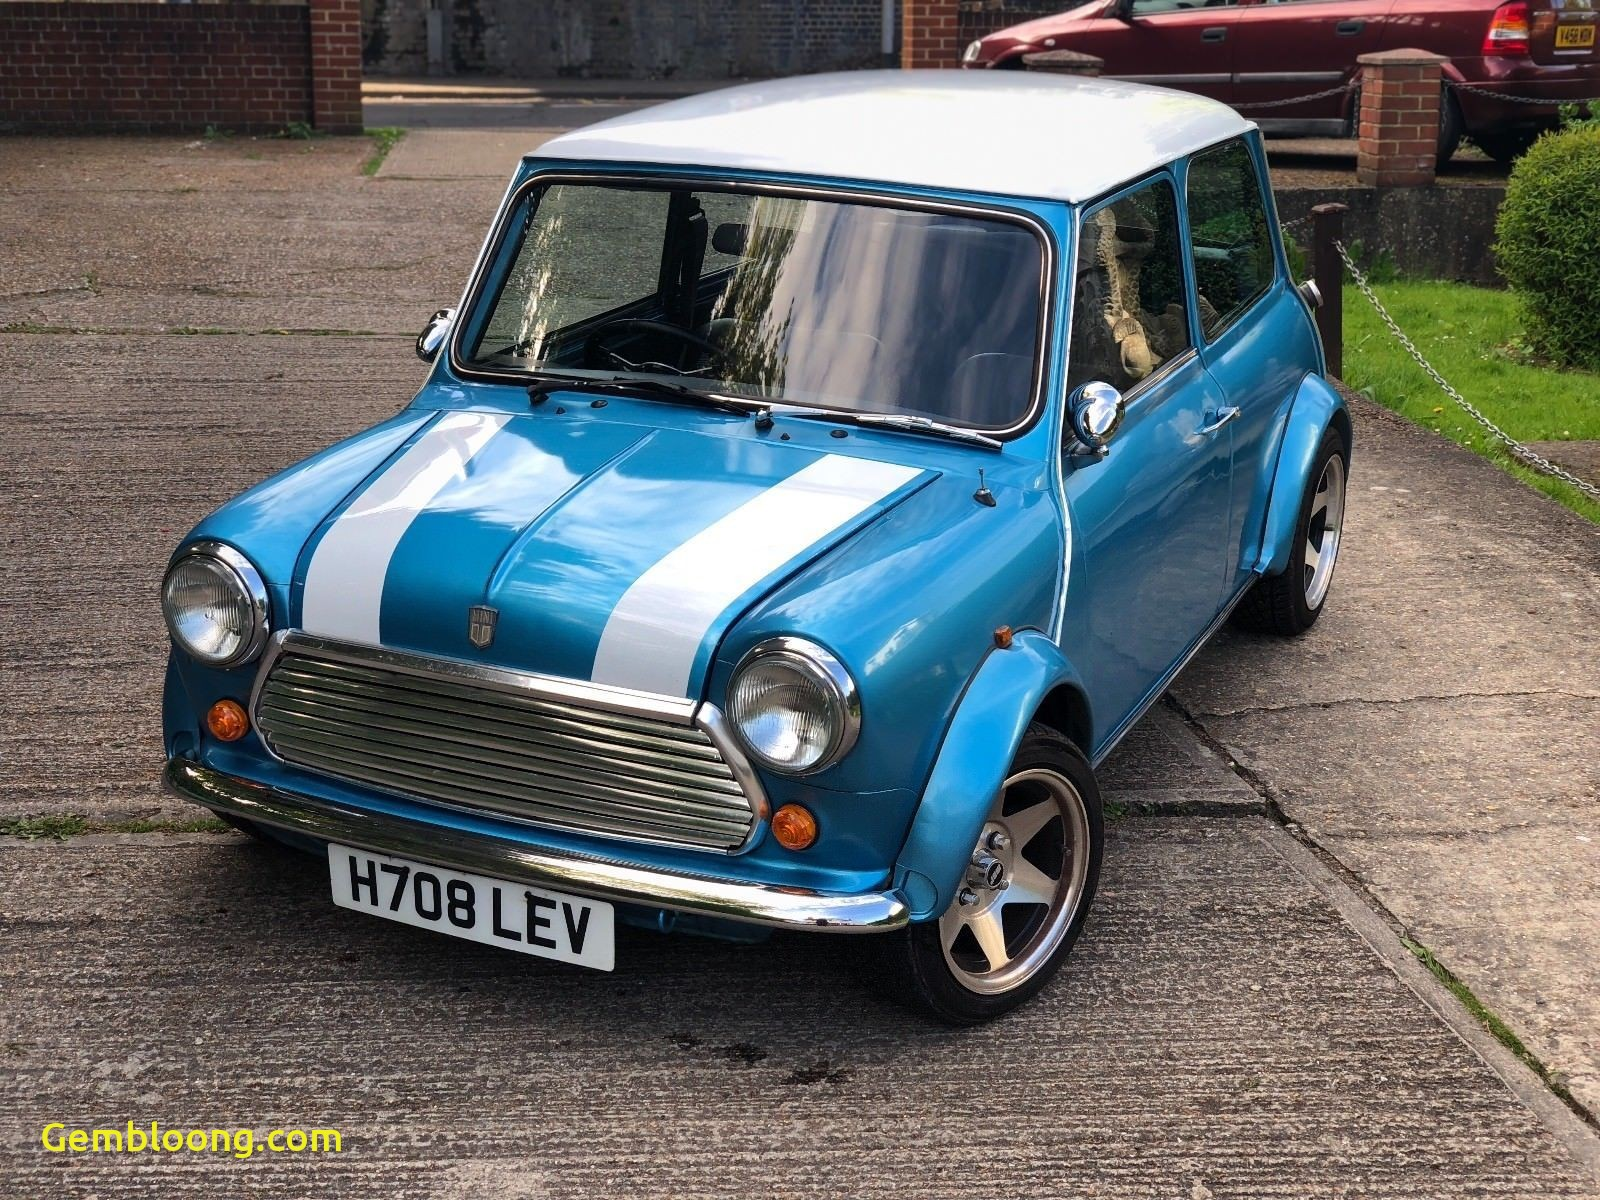 Cars for Sale Near Me Classic Inspirational Ebay Classic Mini Classicmini Mini Mini